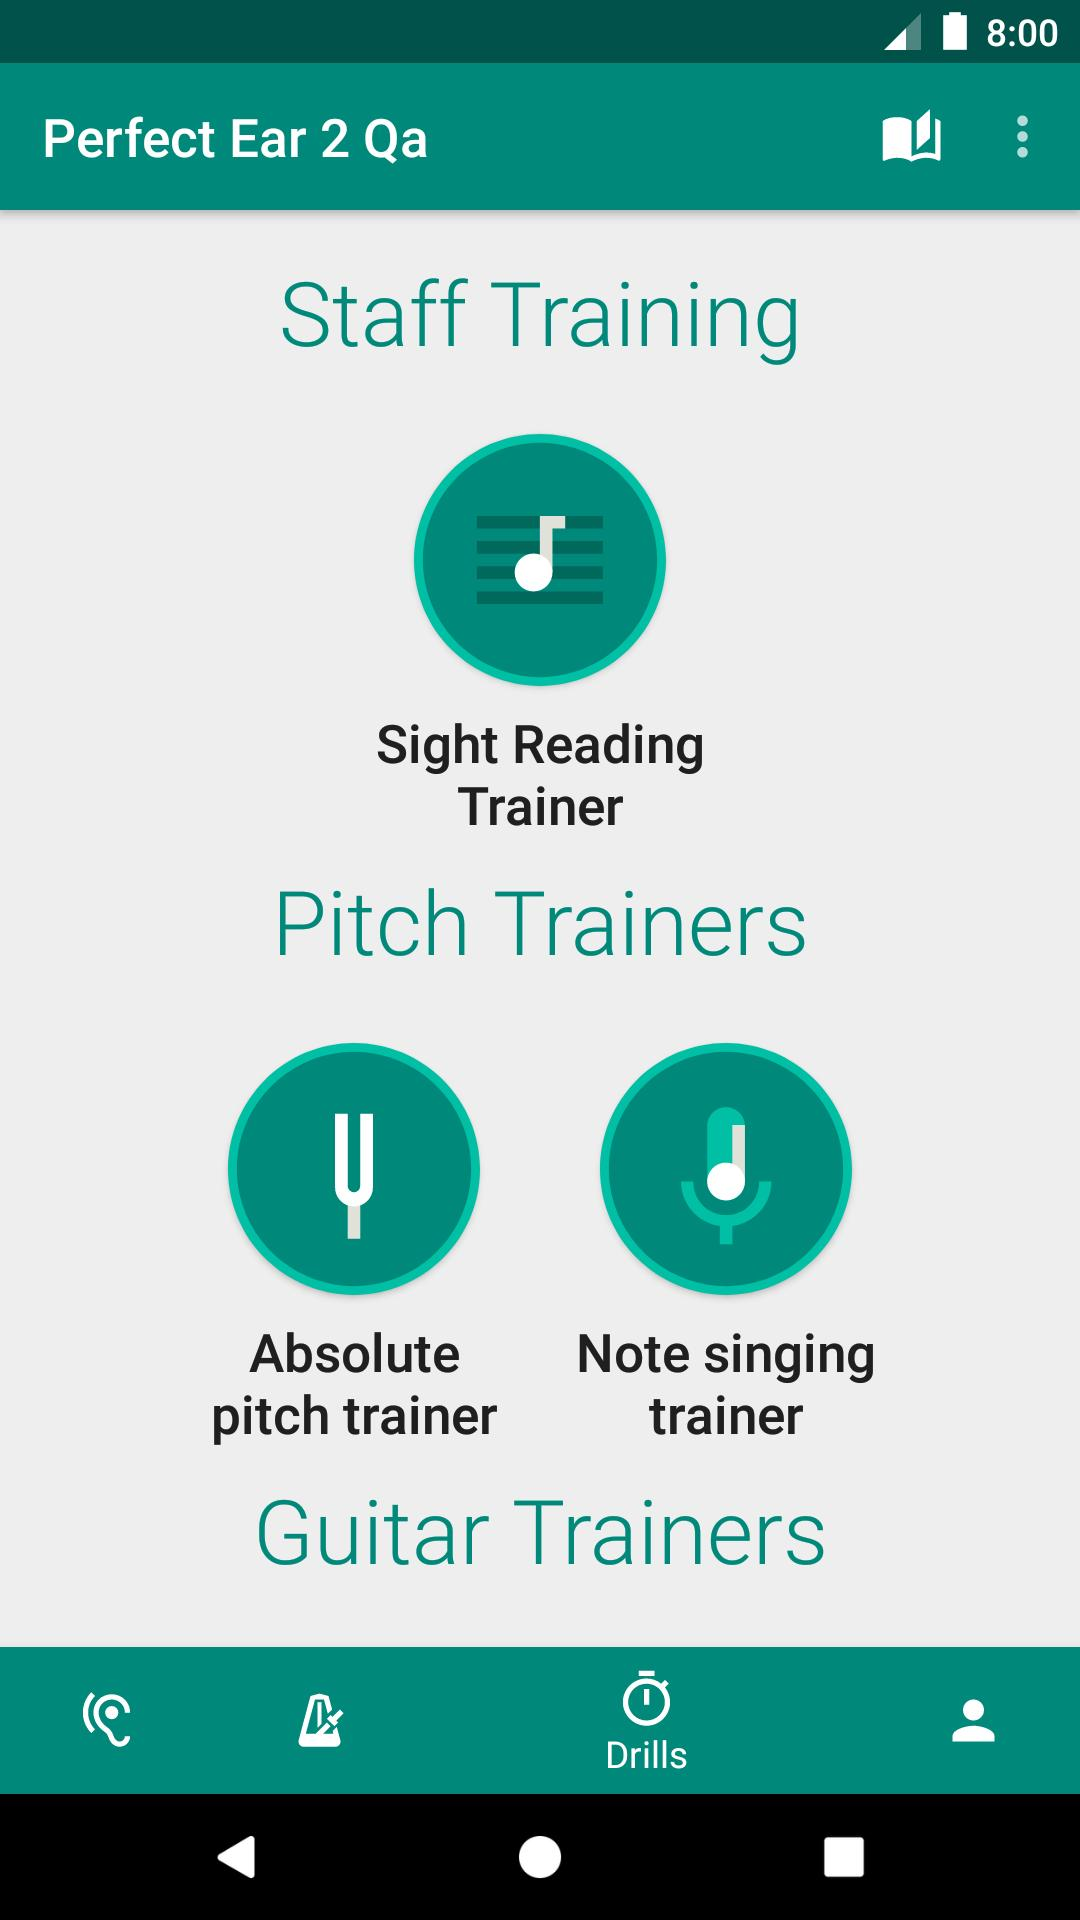 Perfect Ear Music Theory, Ear & Rhythm Training 3.8.66 Screenshot 5